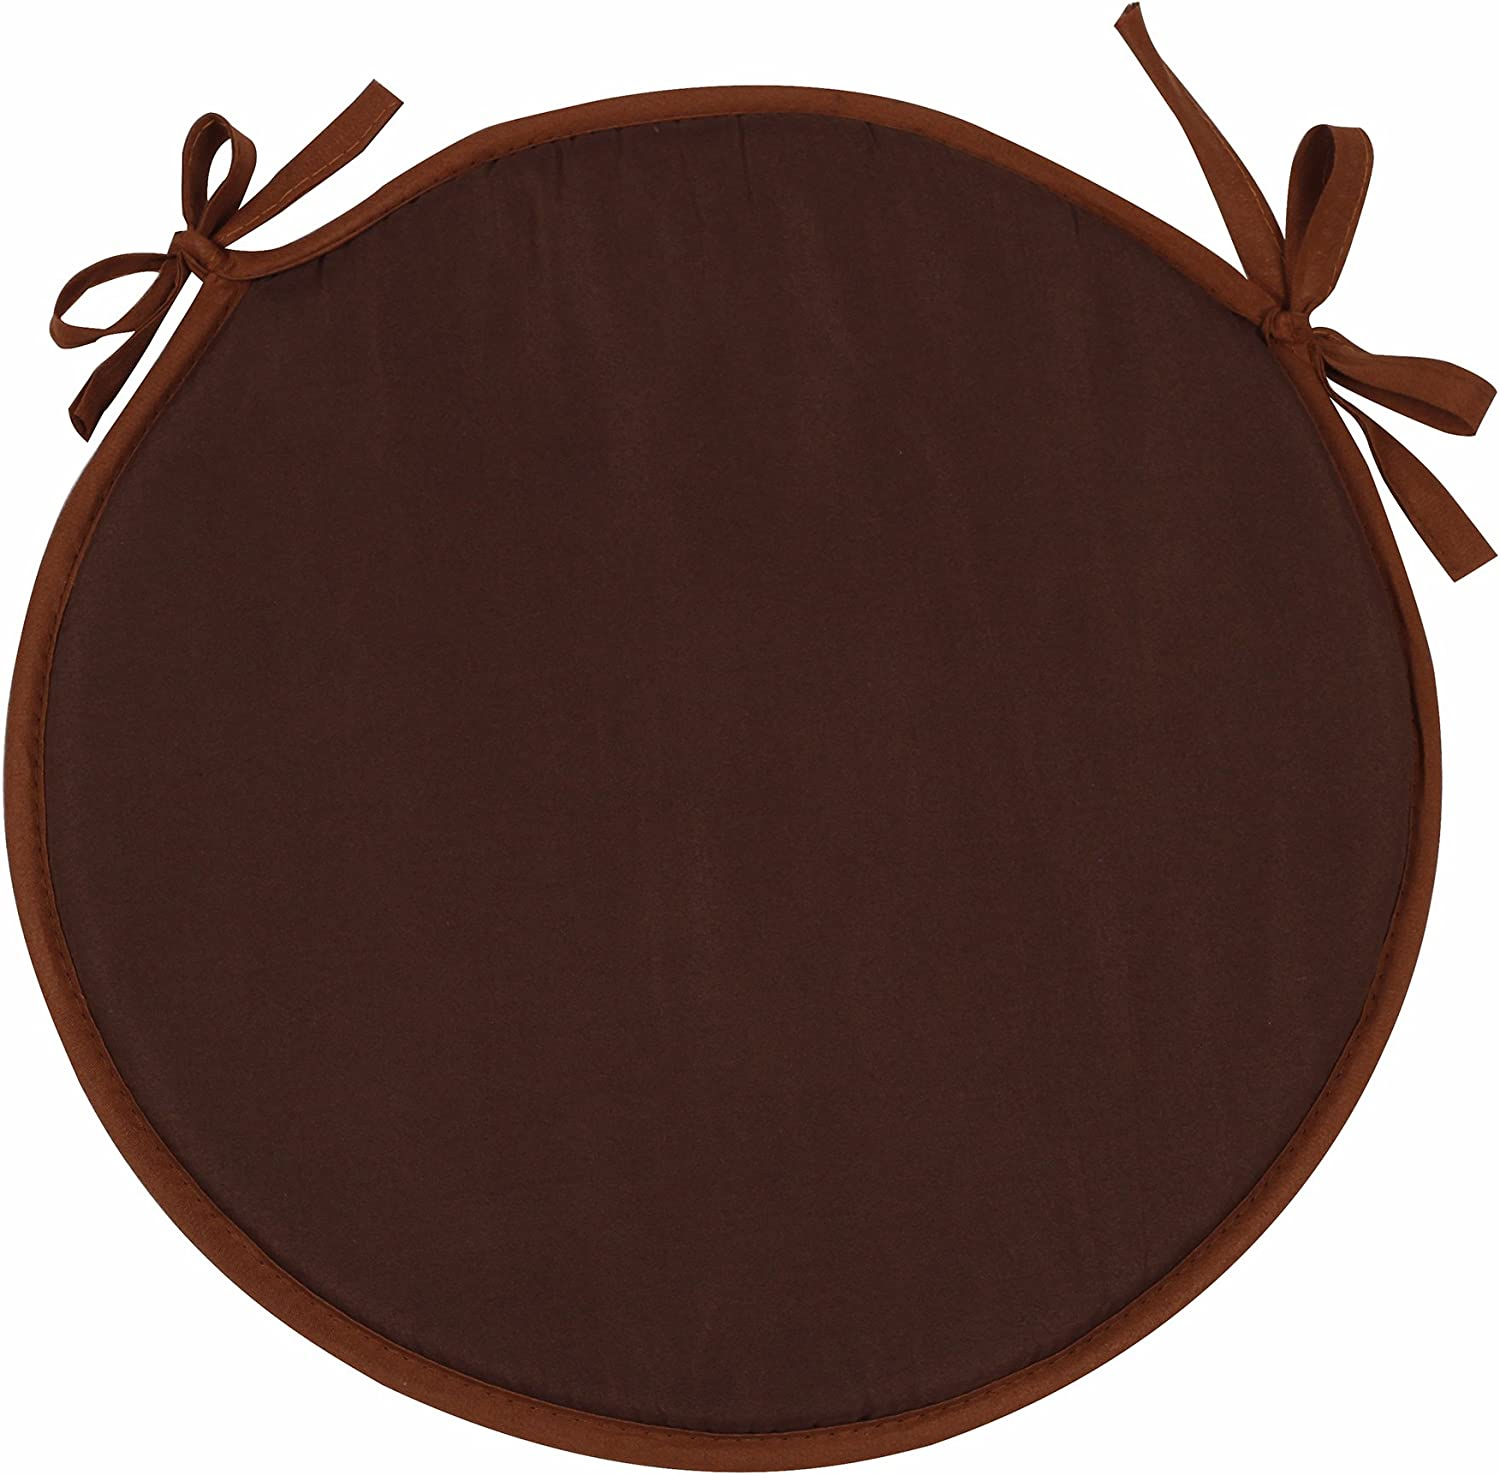 Amazon.com: SimpVale Set Of 4 Seat Cushions With Ties - Round Chair Pads For Armchairs Garden Outdoor Indoor Chairs (Diameter 15inch/Thickness 1.2inch, Brown): Kitchen & Dining